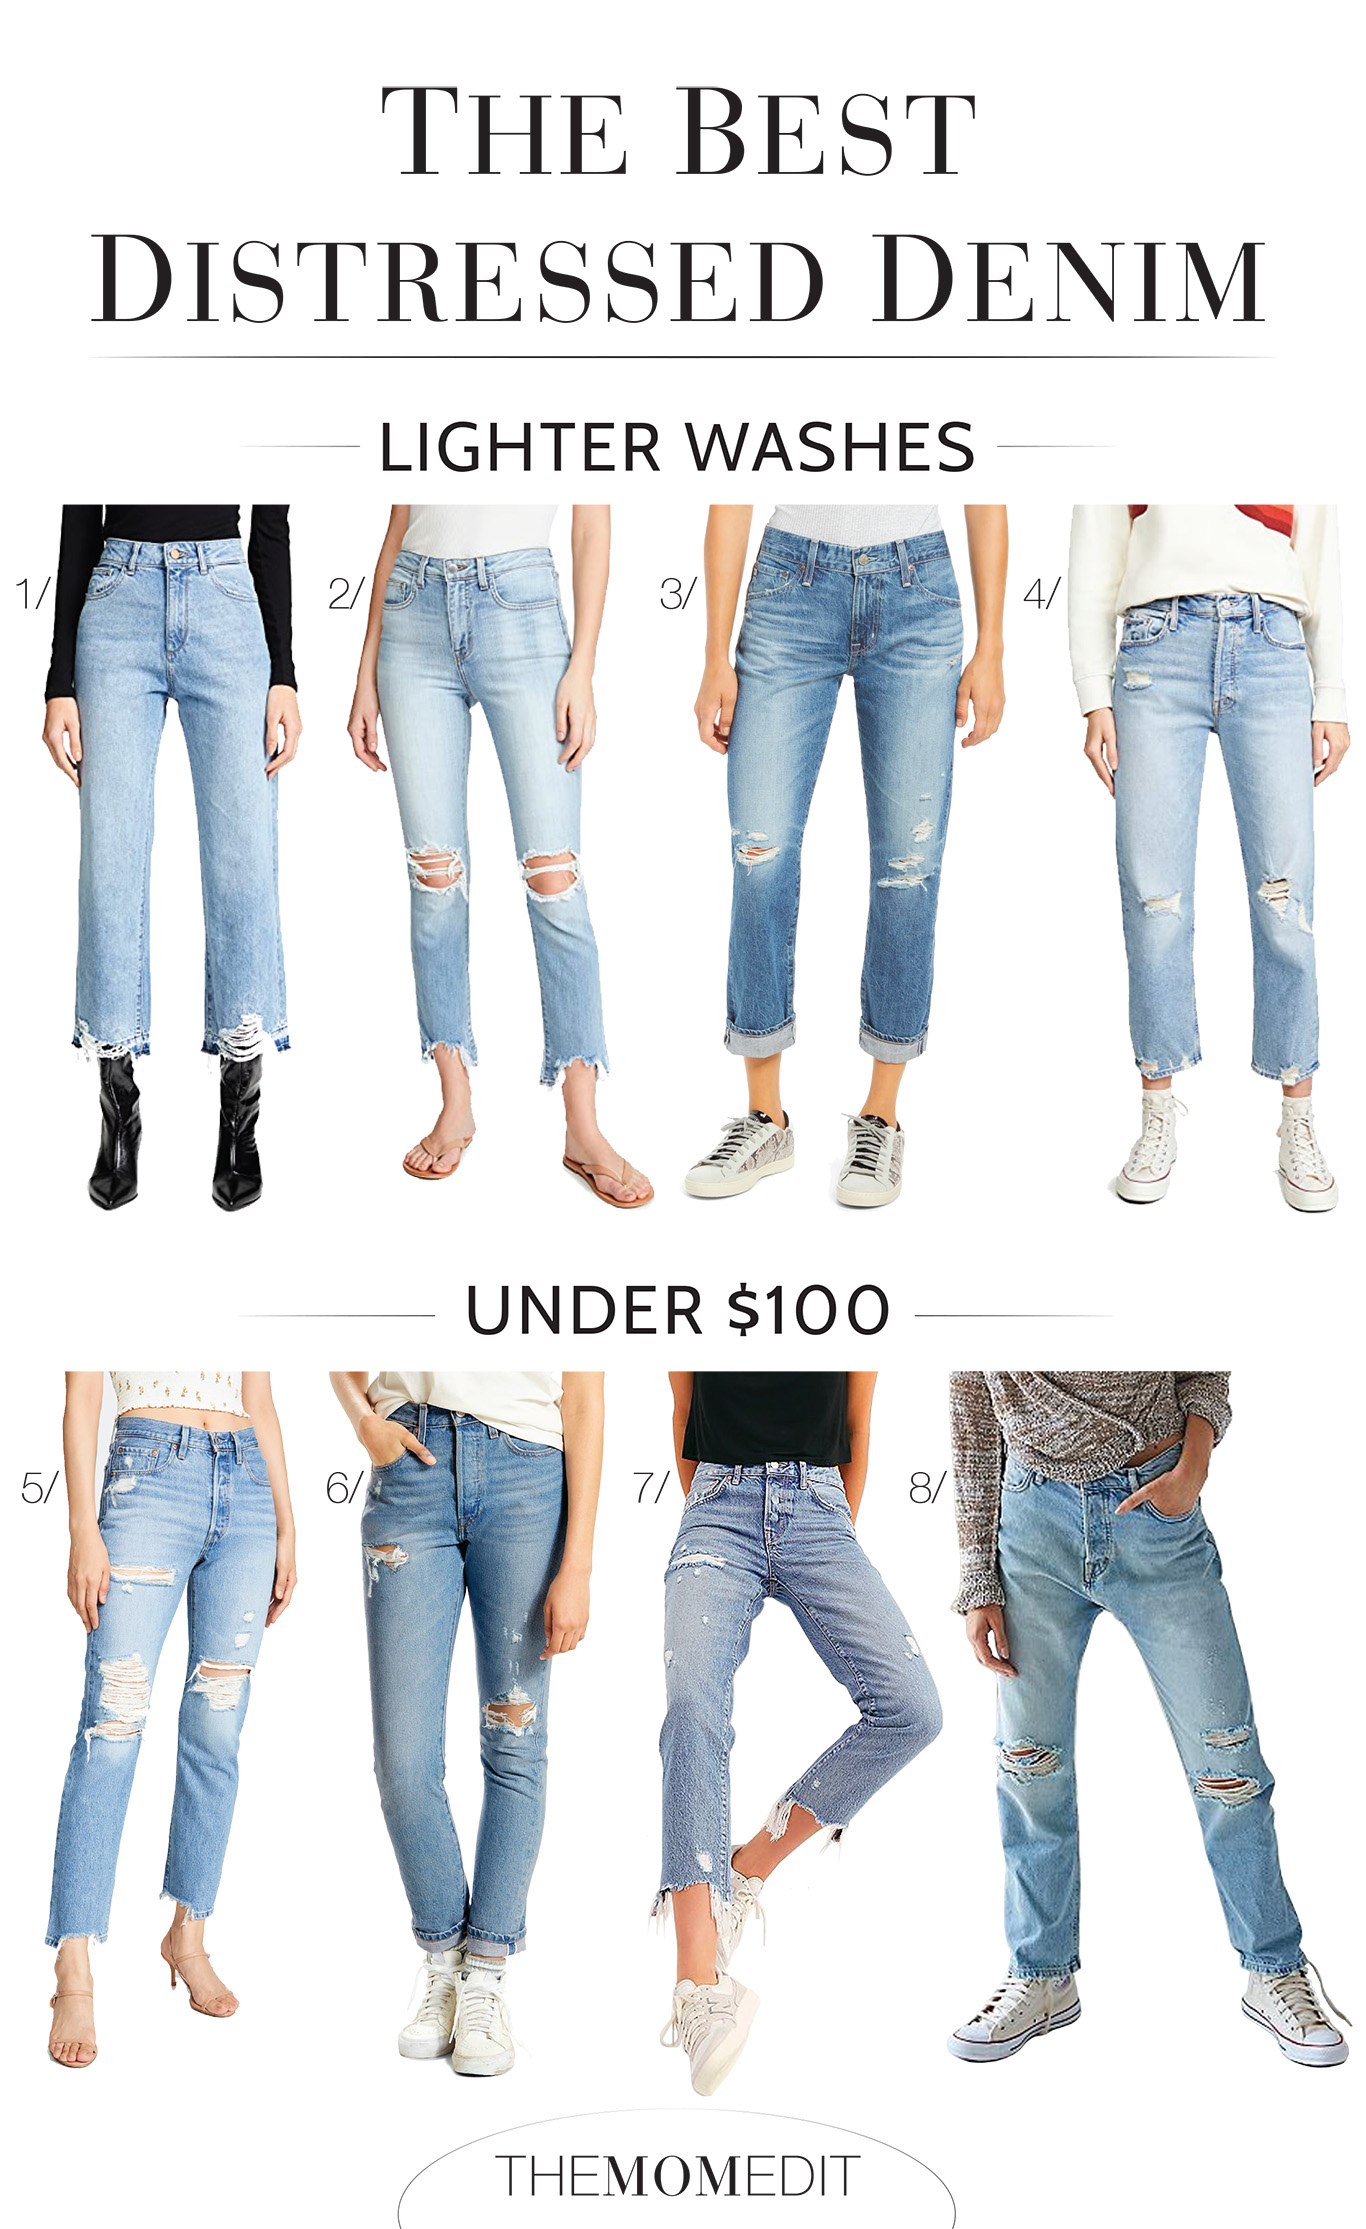 Our fav distressed jeans, in light, dark & black washes, for every budget & possibly every category. Skinny, curvy fit, plus-size, high-rise...